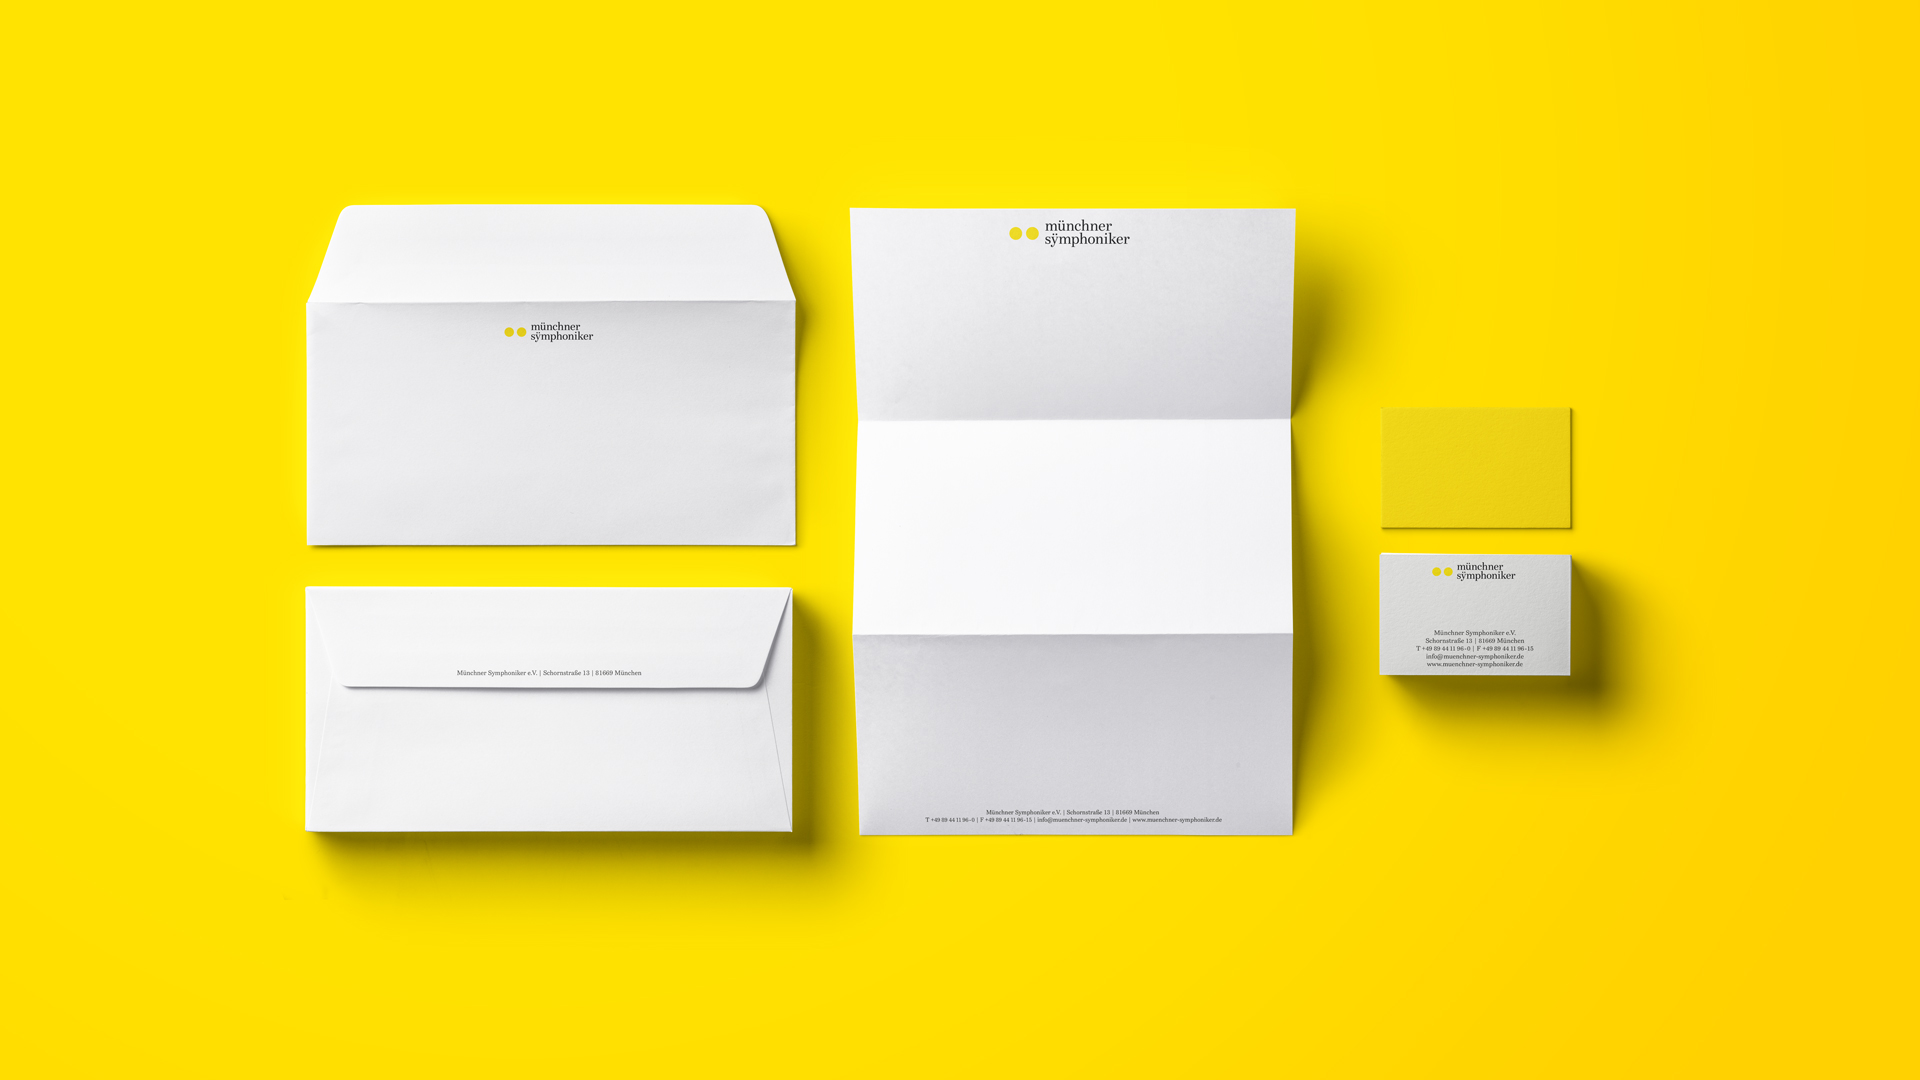 The new business equipment of the Munich Symphony Orchestra is located on a yellow background.